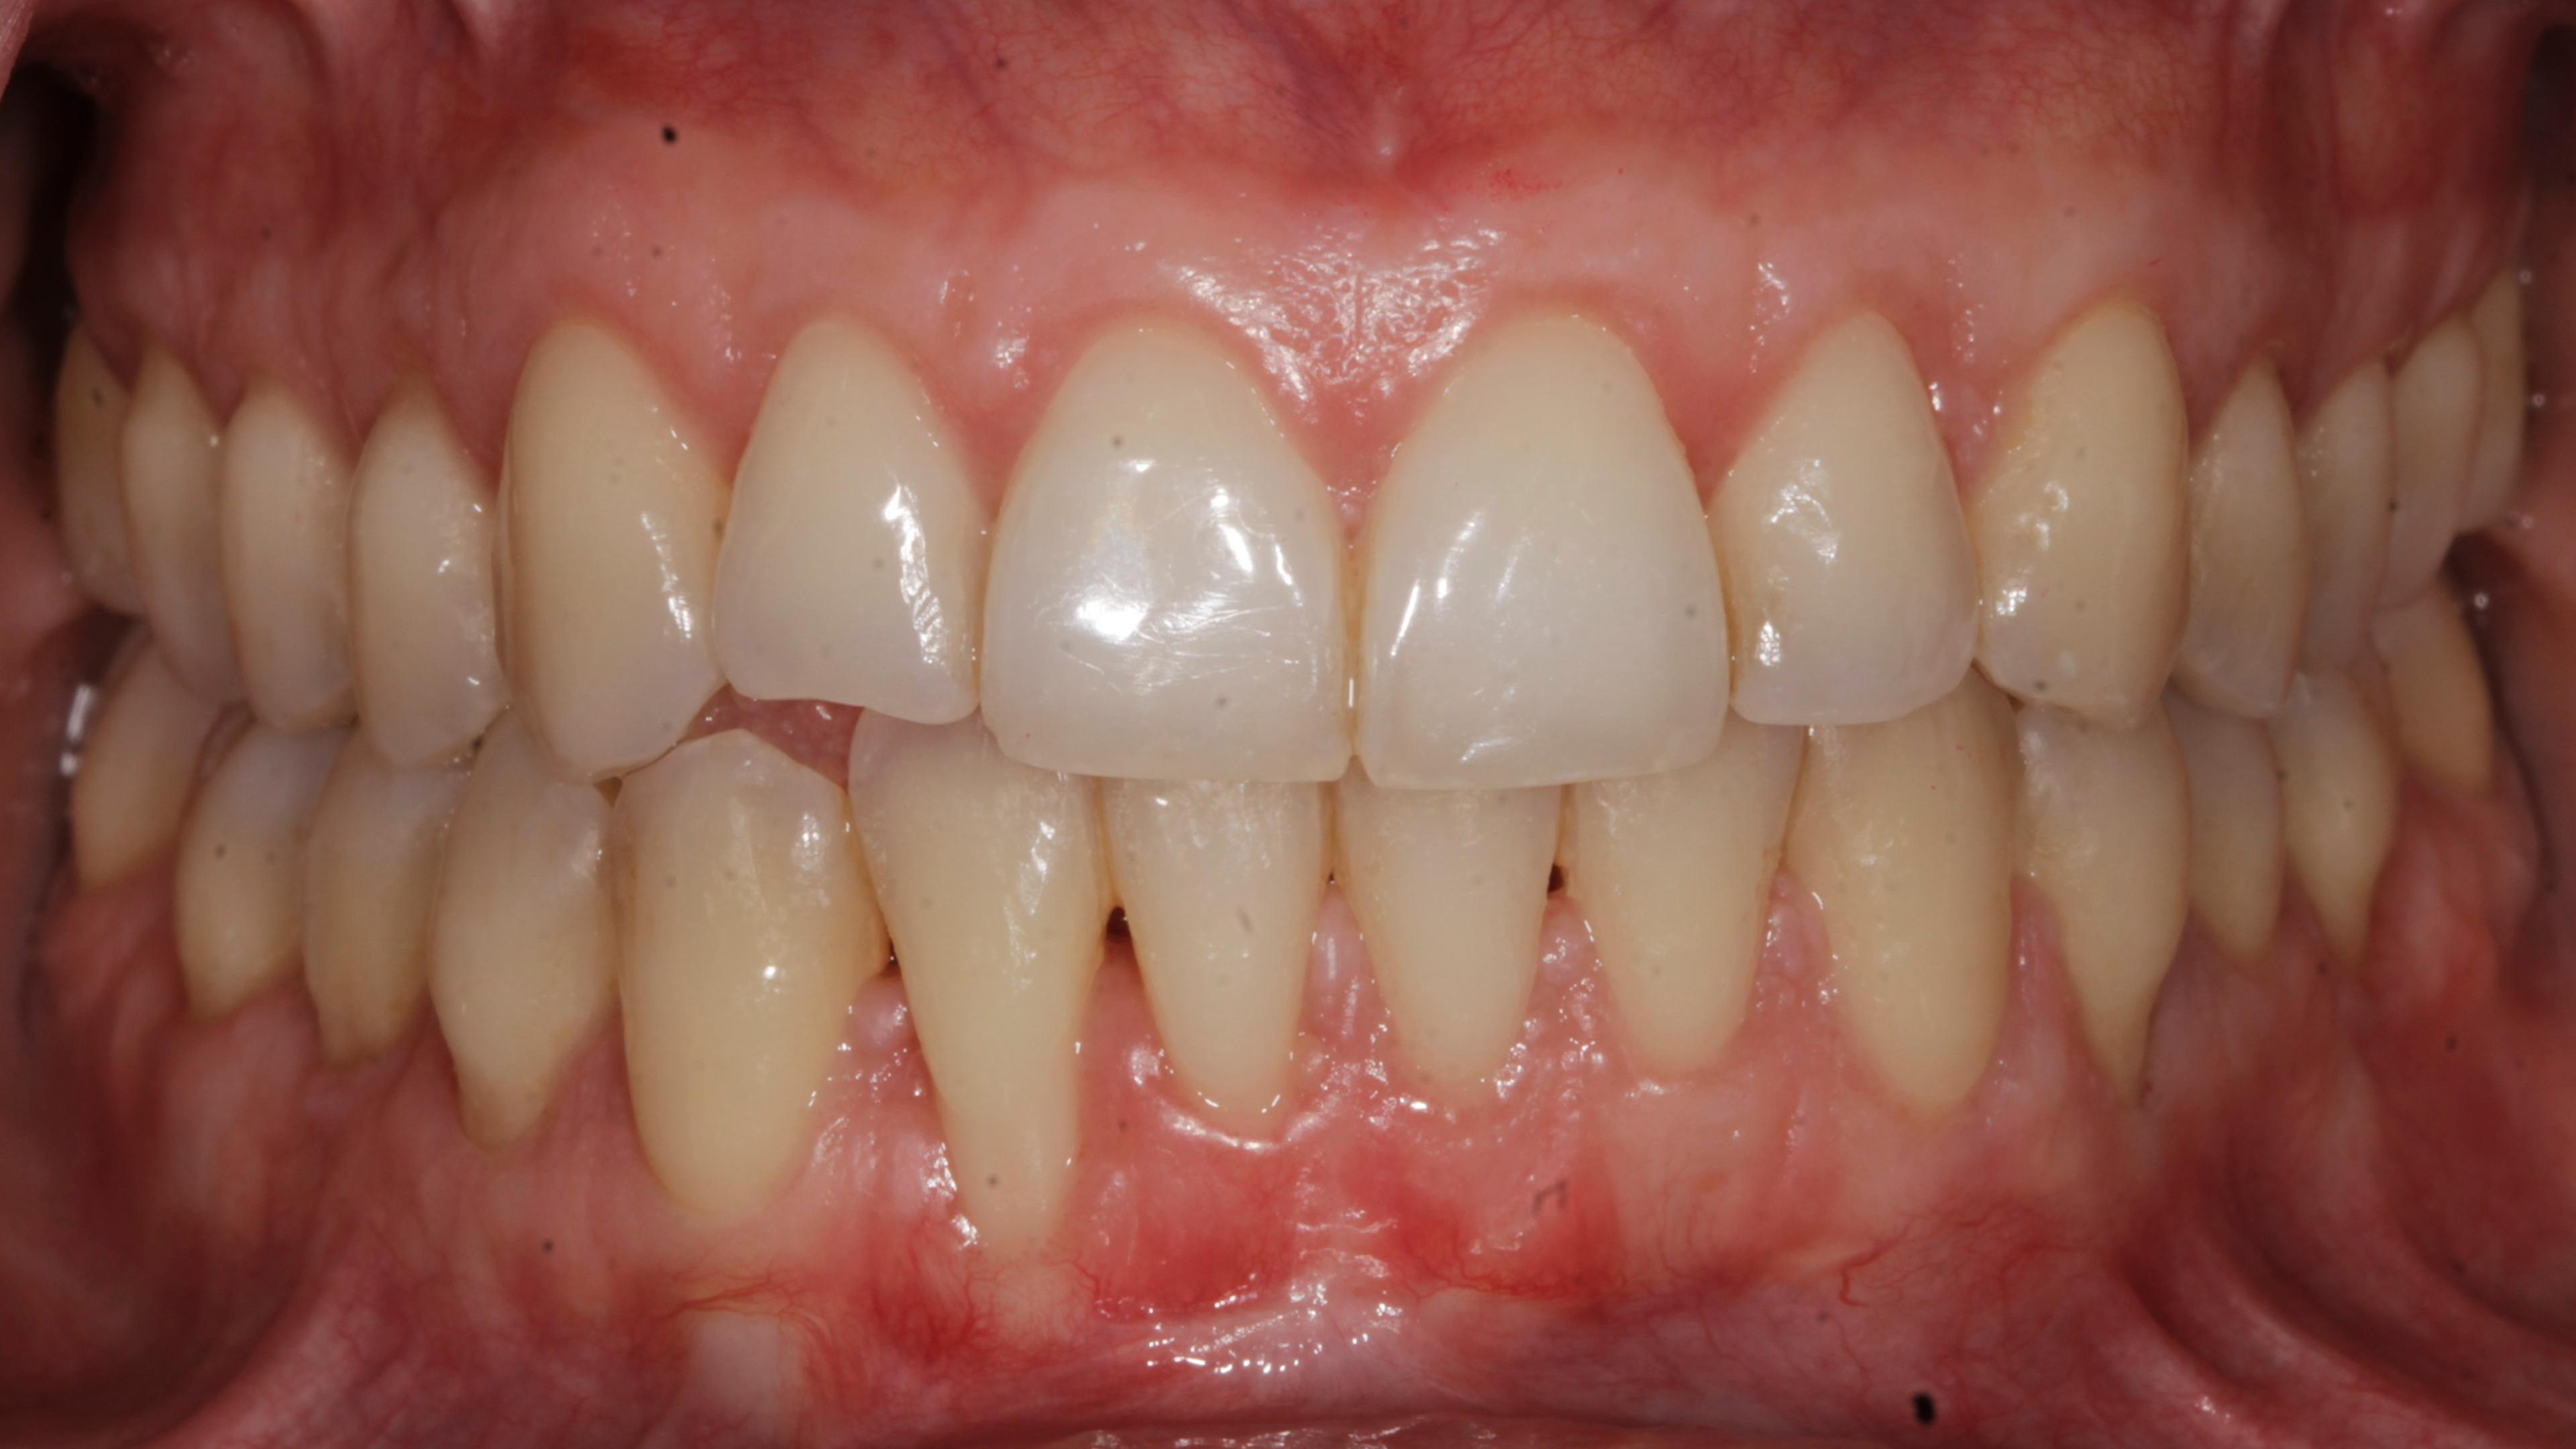 Periodontal plastic surgery After treatment - Root recessions